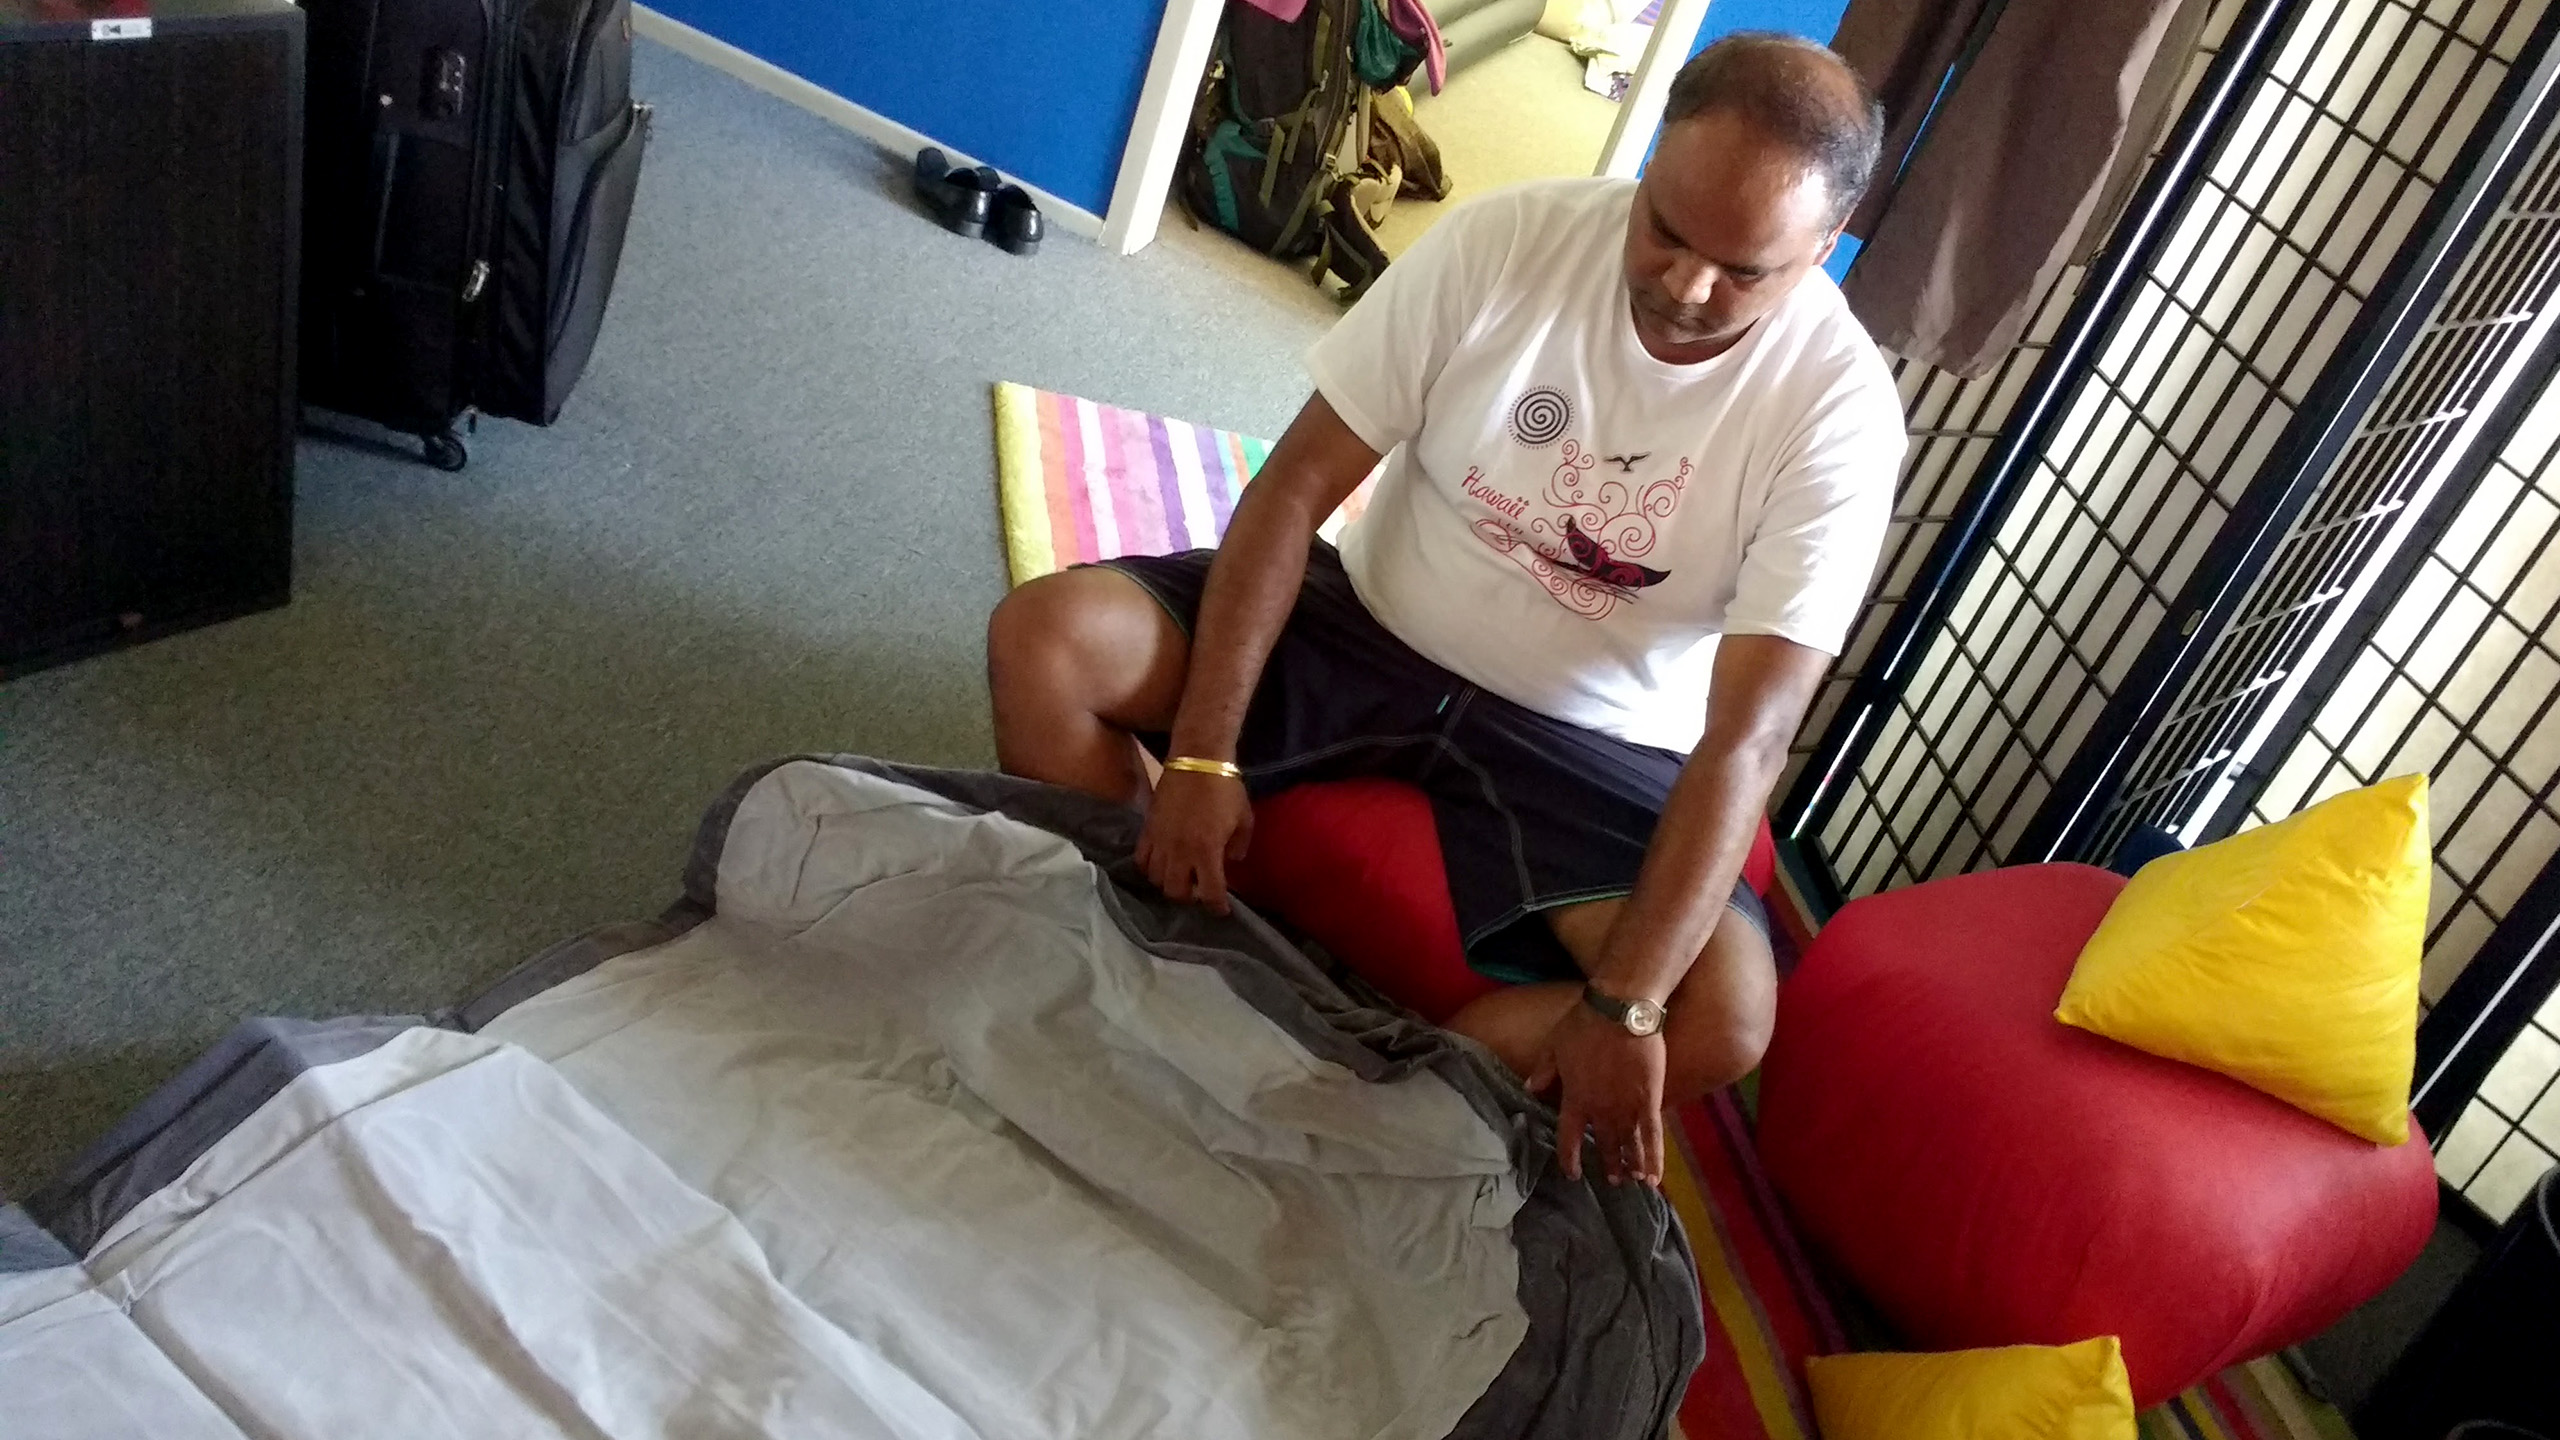 Kamal inflating an air mattress.